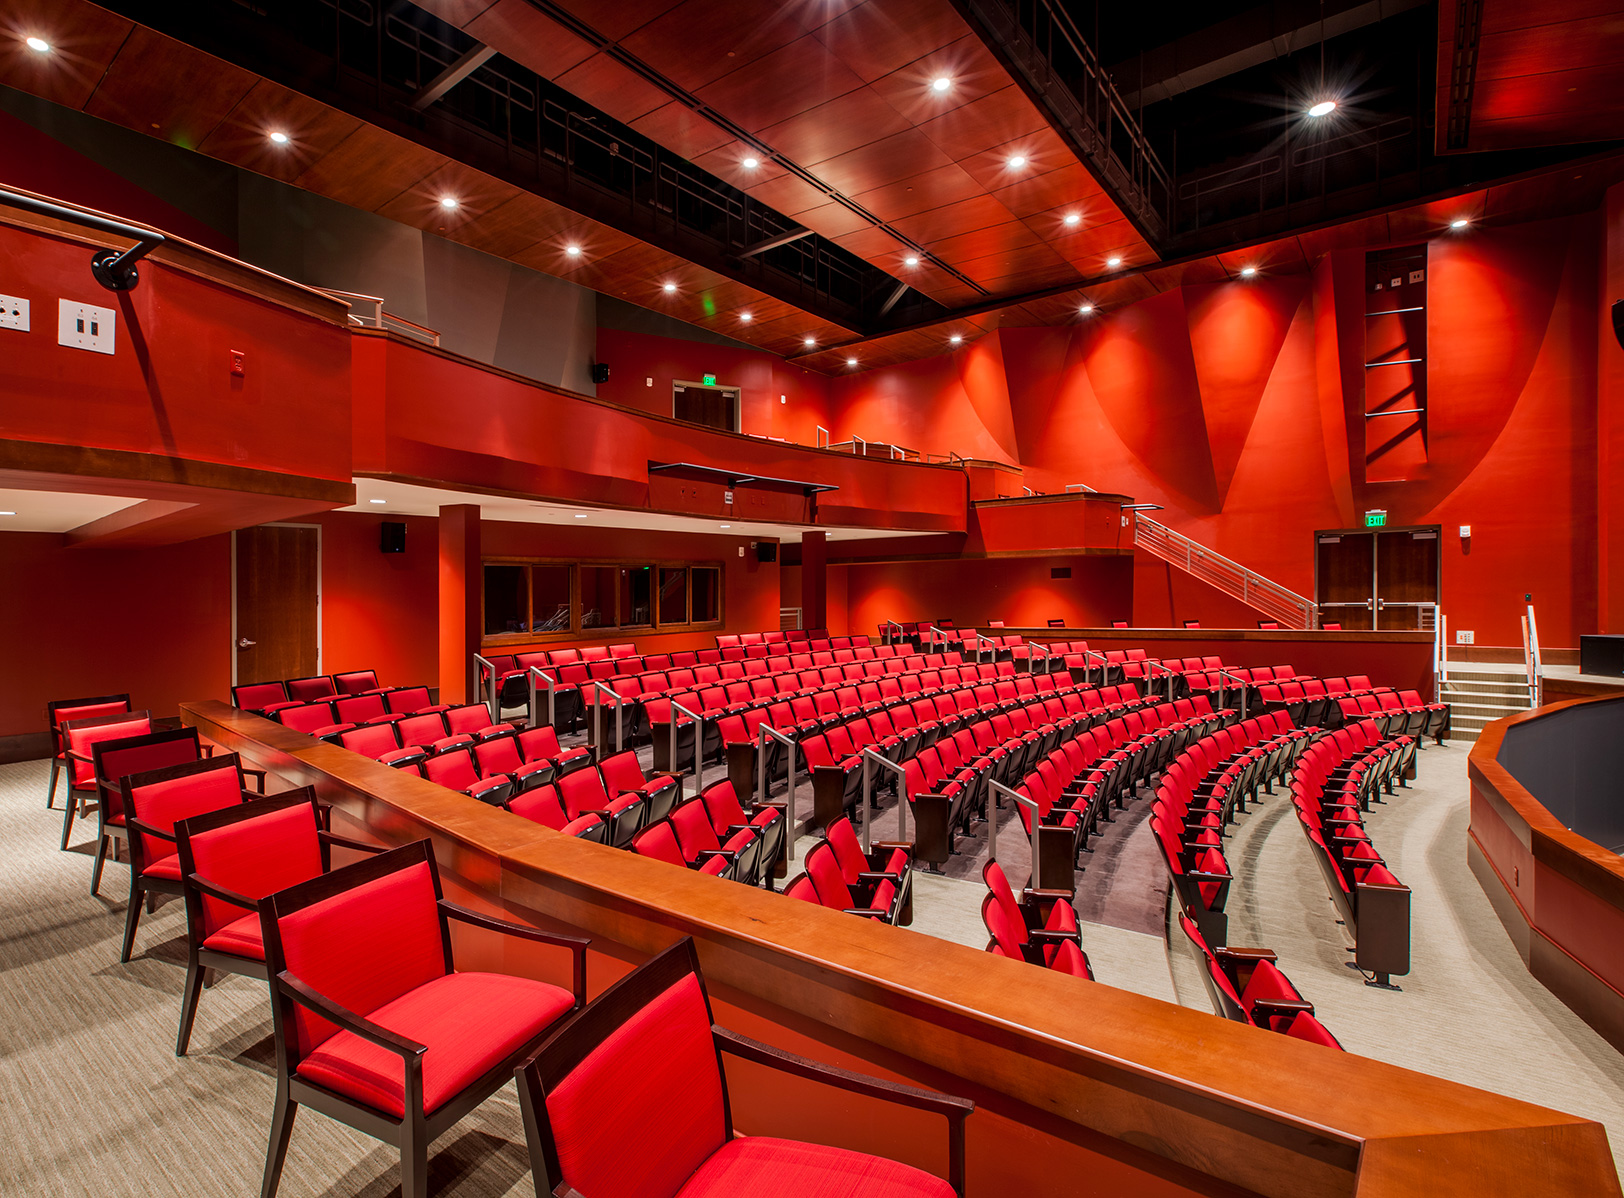 Theater in the Rosalind Sallenger Richardson Center for the Arts